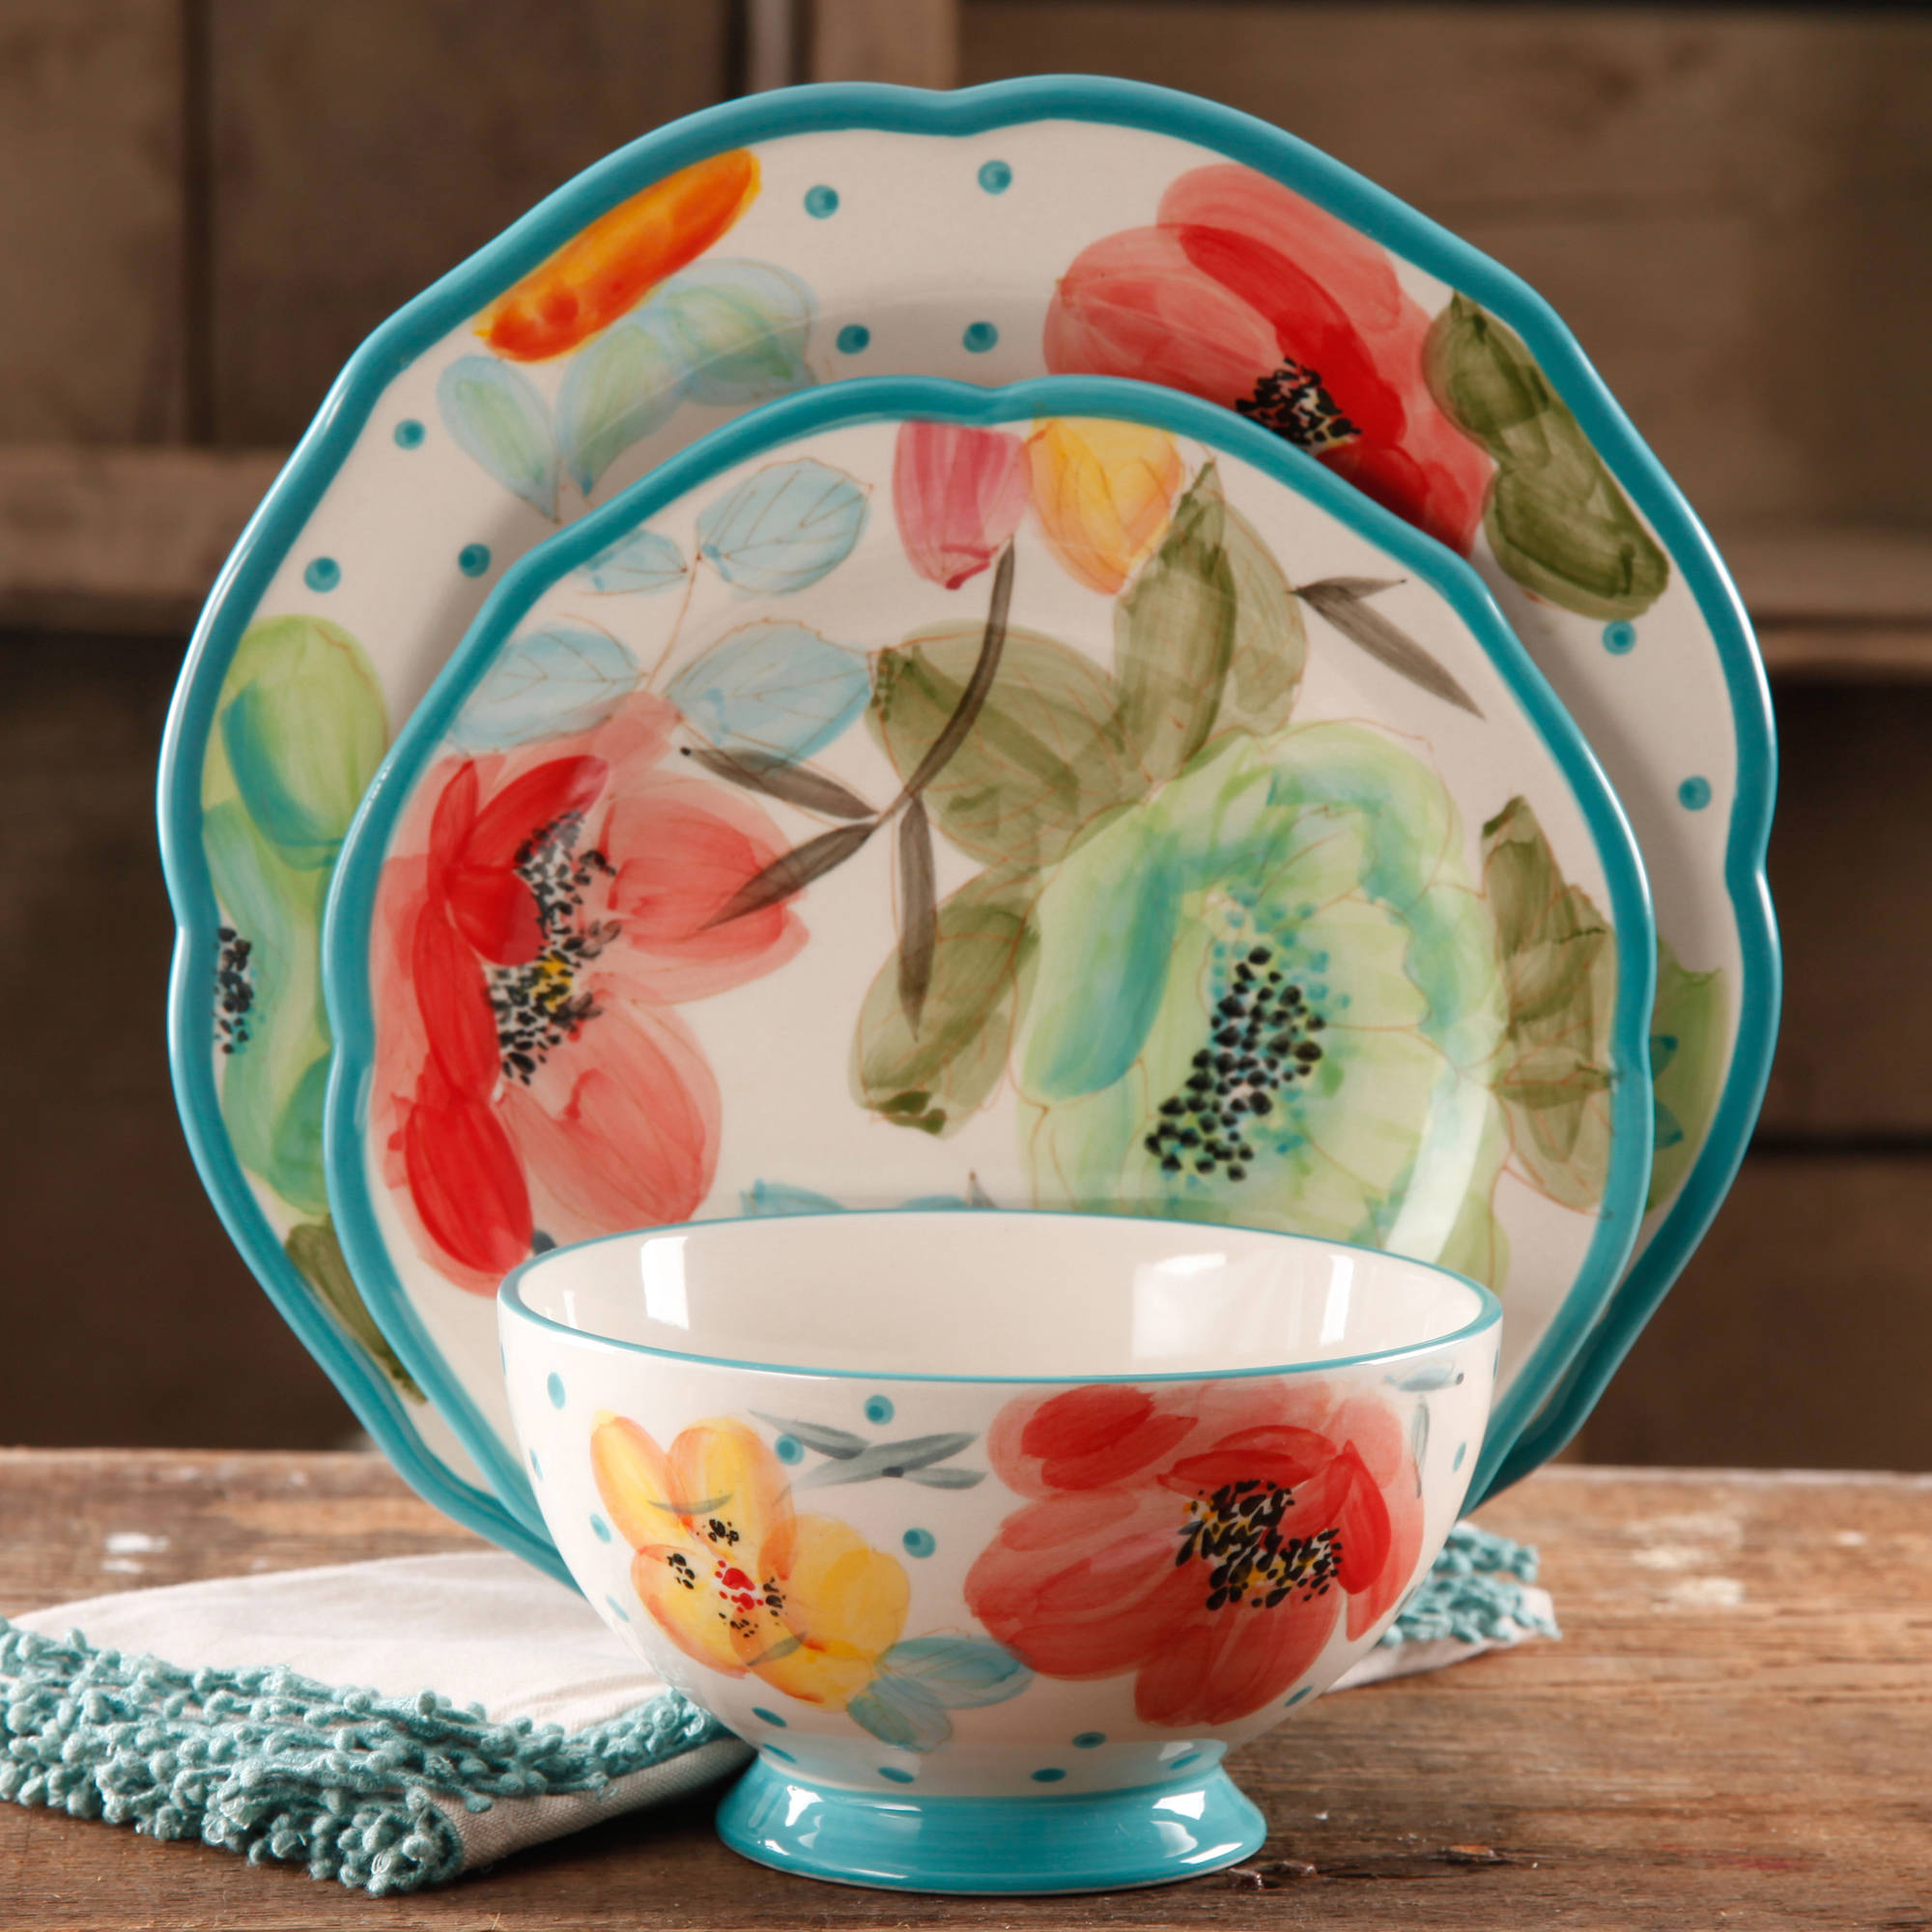 The Pioneer Woman Vintage Bloom 12-Piece Decorated Dinnerware Set - Walmart.com  sc 1 st  Walmart : unique tableware sets - pezcame.com